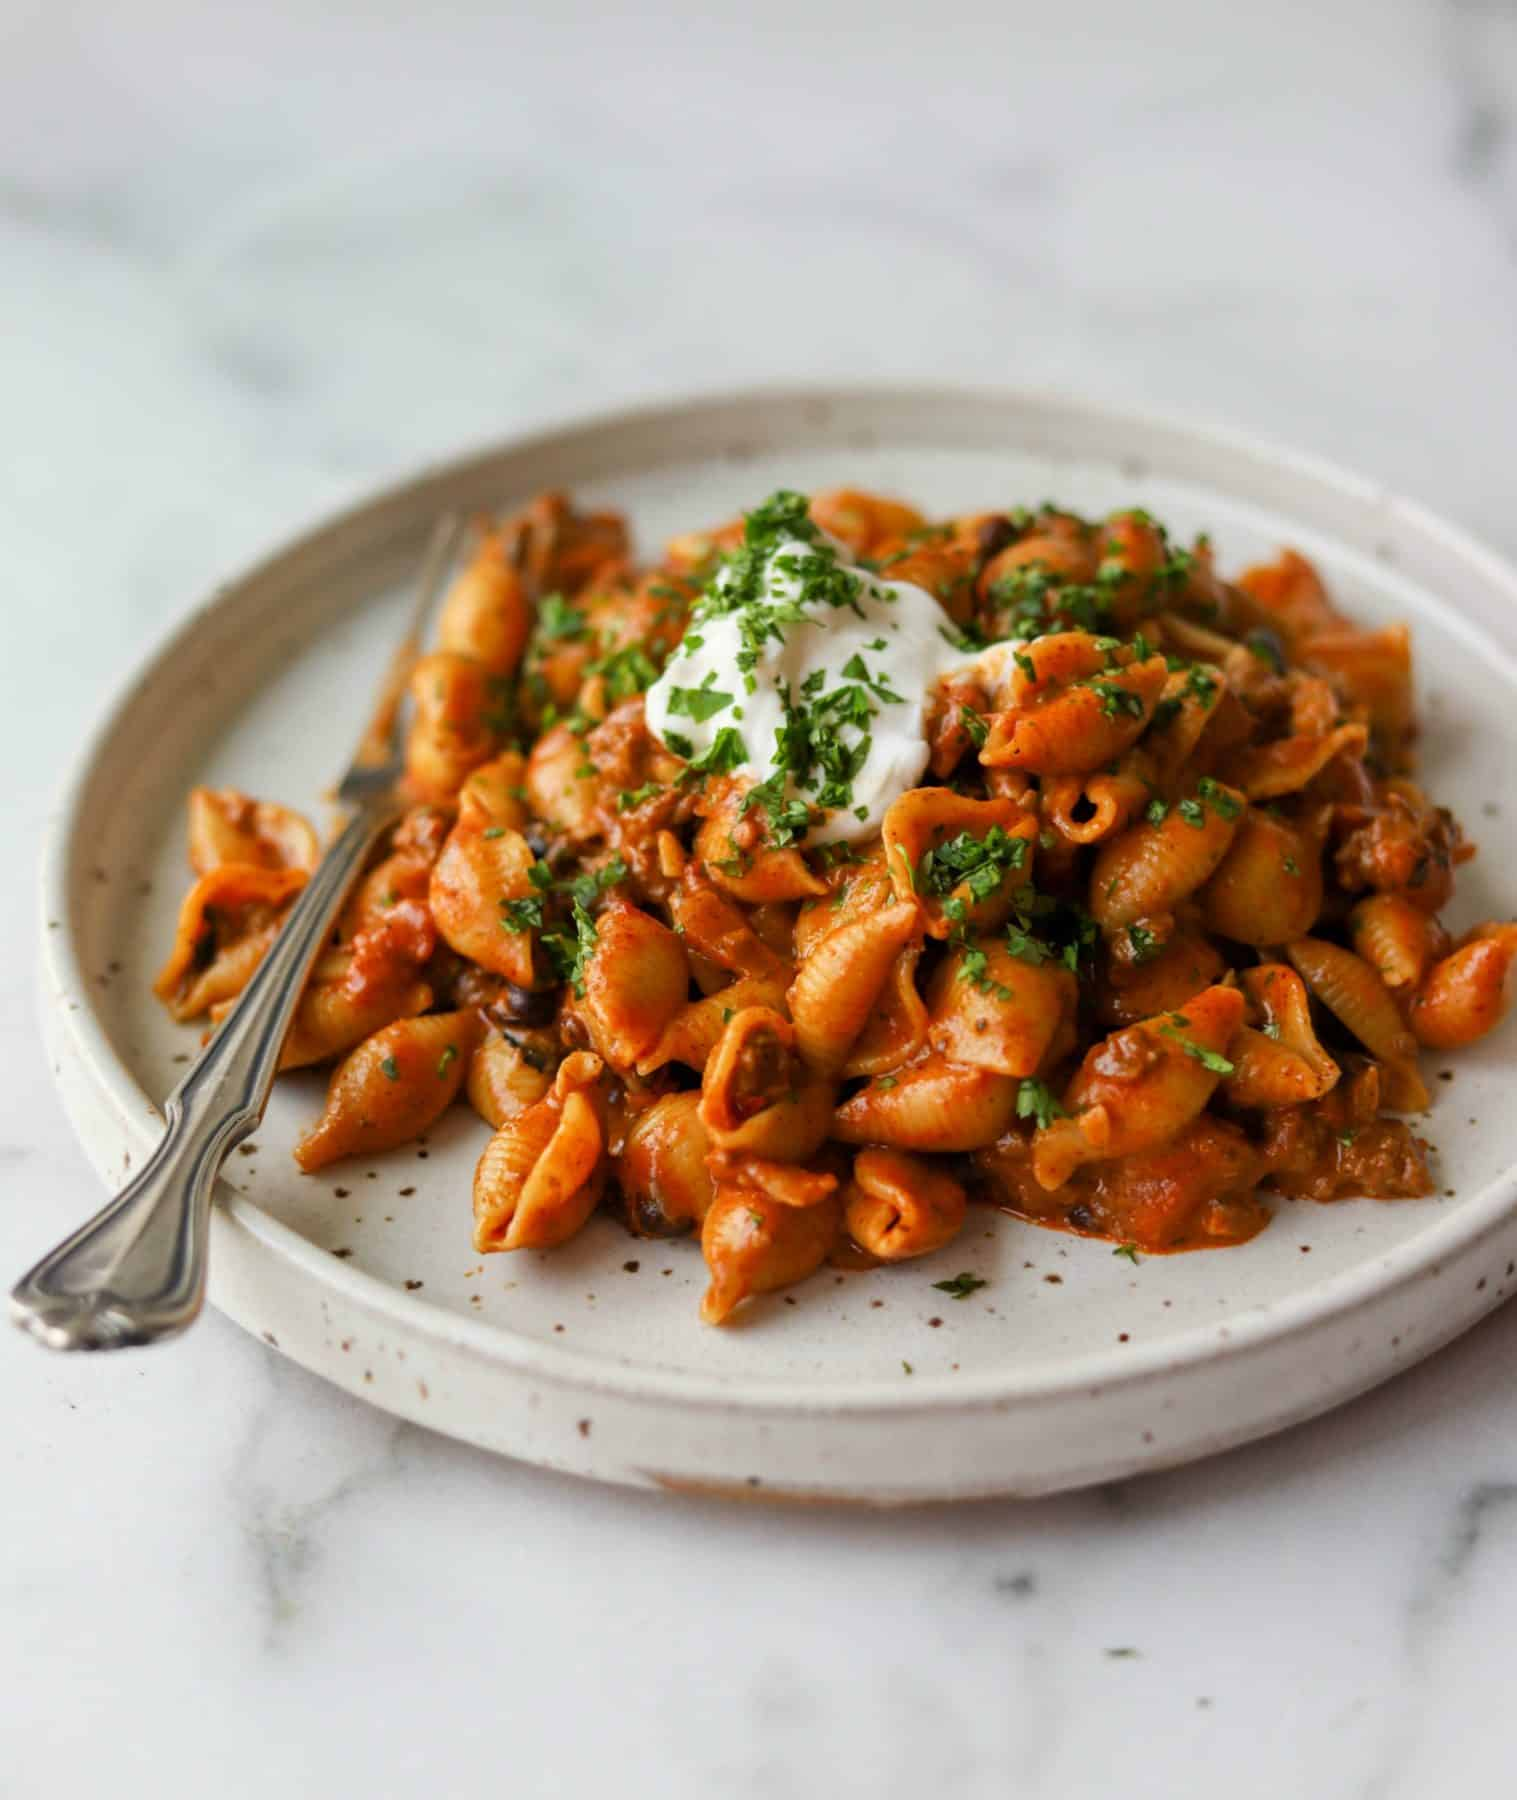 Cheesy taco pasta on a plate made with black beans.